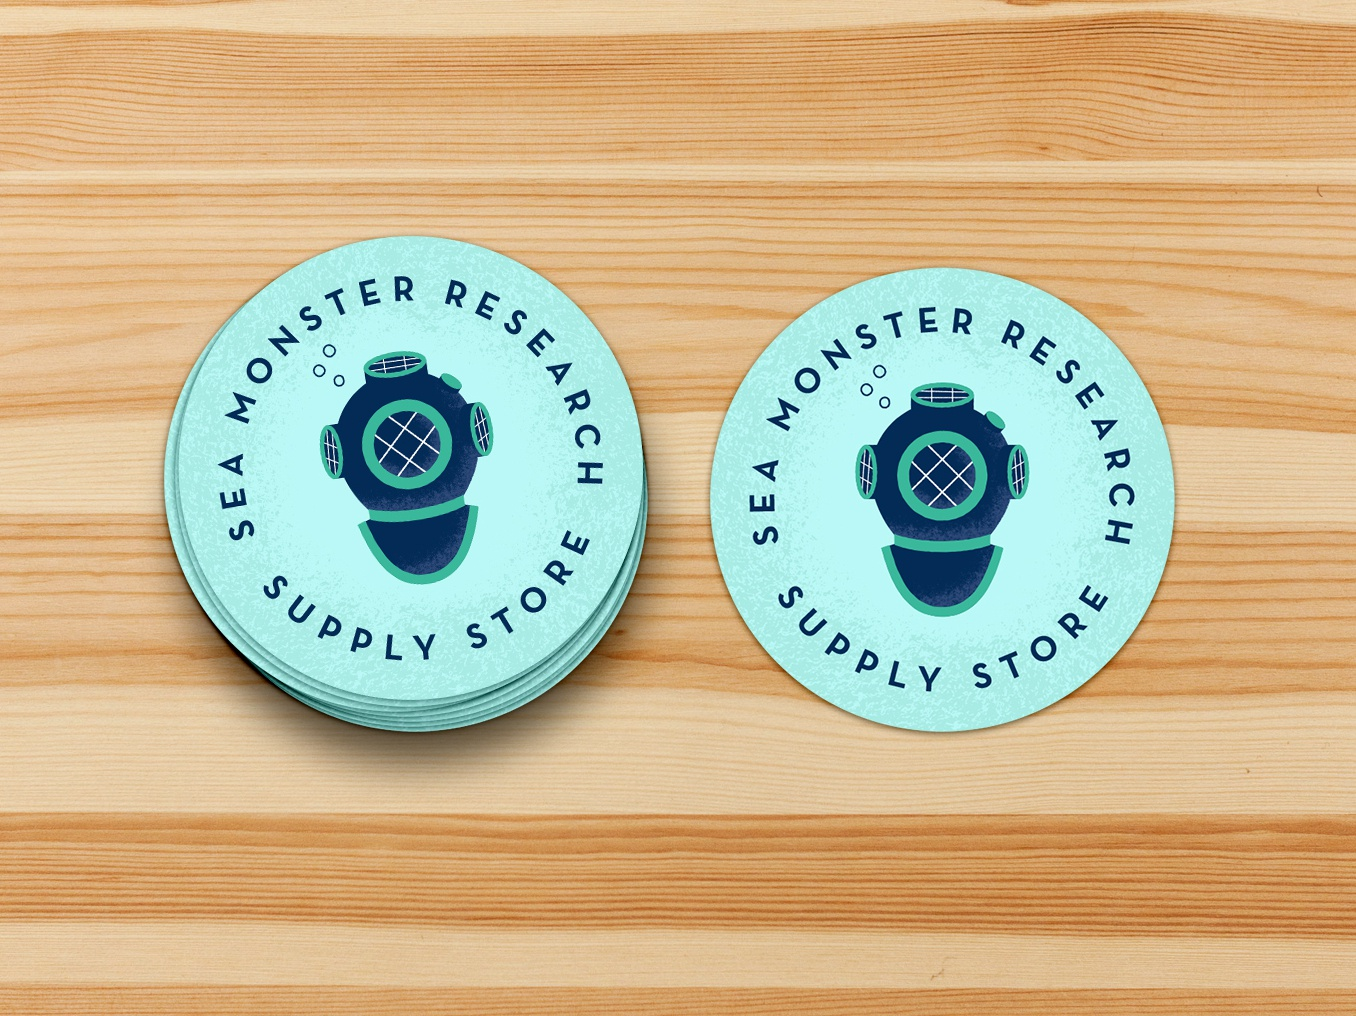 Sea Monster Research Supply Store Stickers louisville sticker illustration under the sea sea monster store young authors childtren learning writing center young authors greenhouse